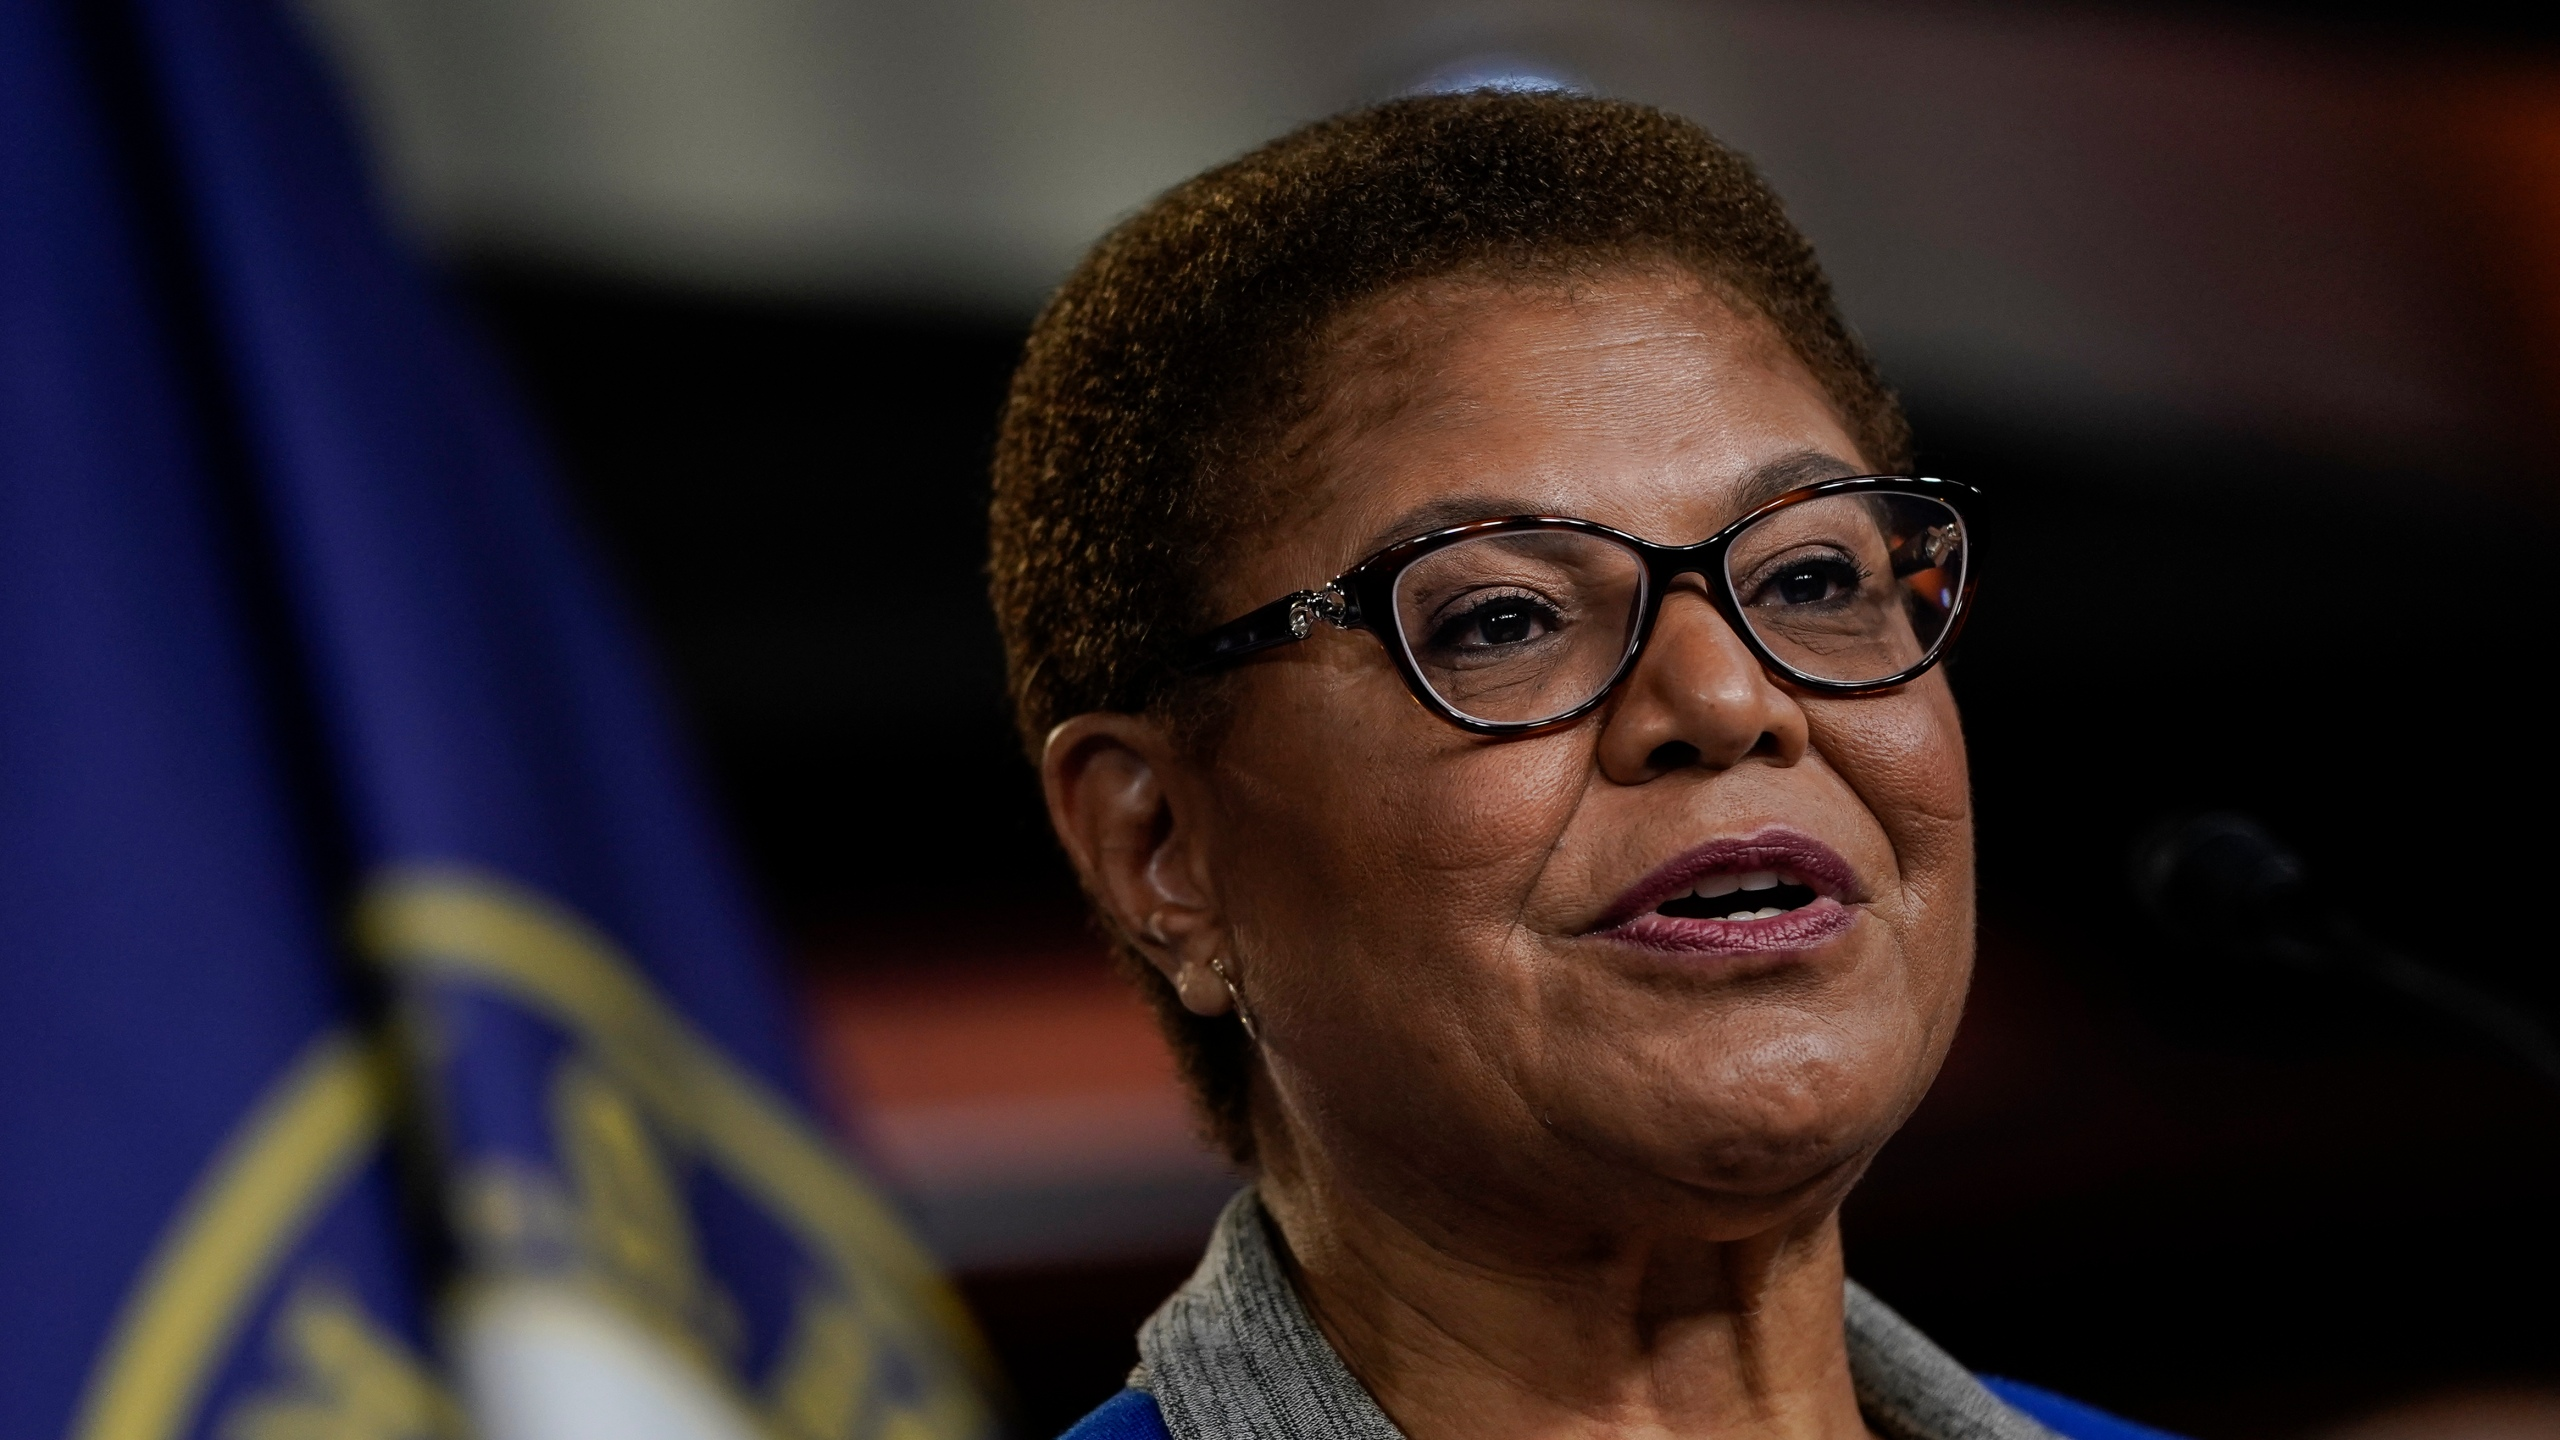 Chair of the Congressional Black Caucus (CBC) Rep. Karen Bass (D-CA) speaks during a news conference to discuss an upcoming House vote regarding statues on Capitol Hill on July 22, 2020, in Washington, D.C. House Democrats have introduced a bill that would replace the bust of former Supreme Court Chief Justice Roger B. Taney in the Old Supreme Court Chamber at the U.S. Capitol with one of former Justice Thurgood Marshall. Taney was the author of the 1857 Dred Scott decision that declared African Americans couldn't be citizens. (Drew Angerer/Getty Images)